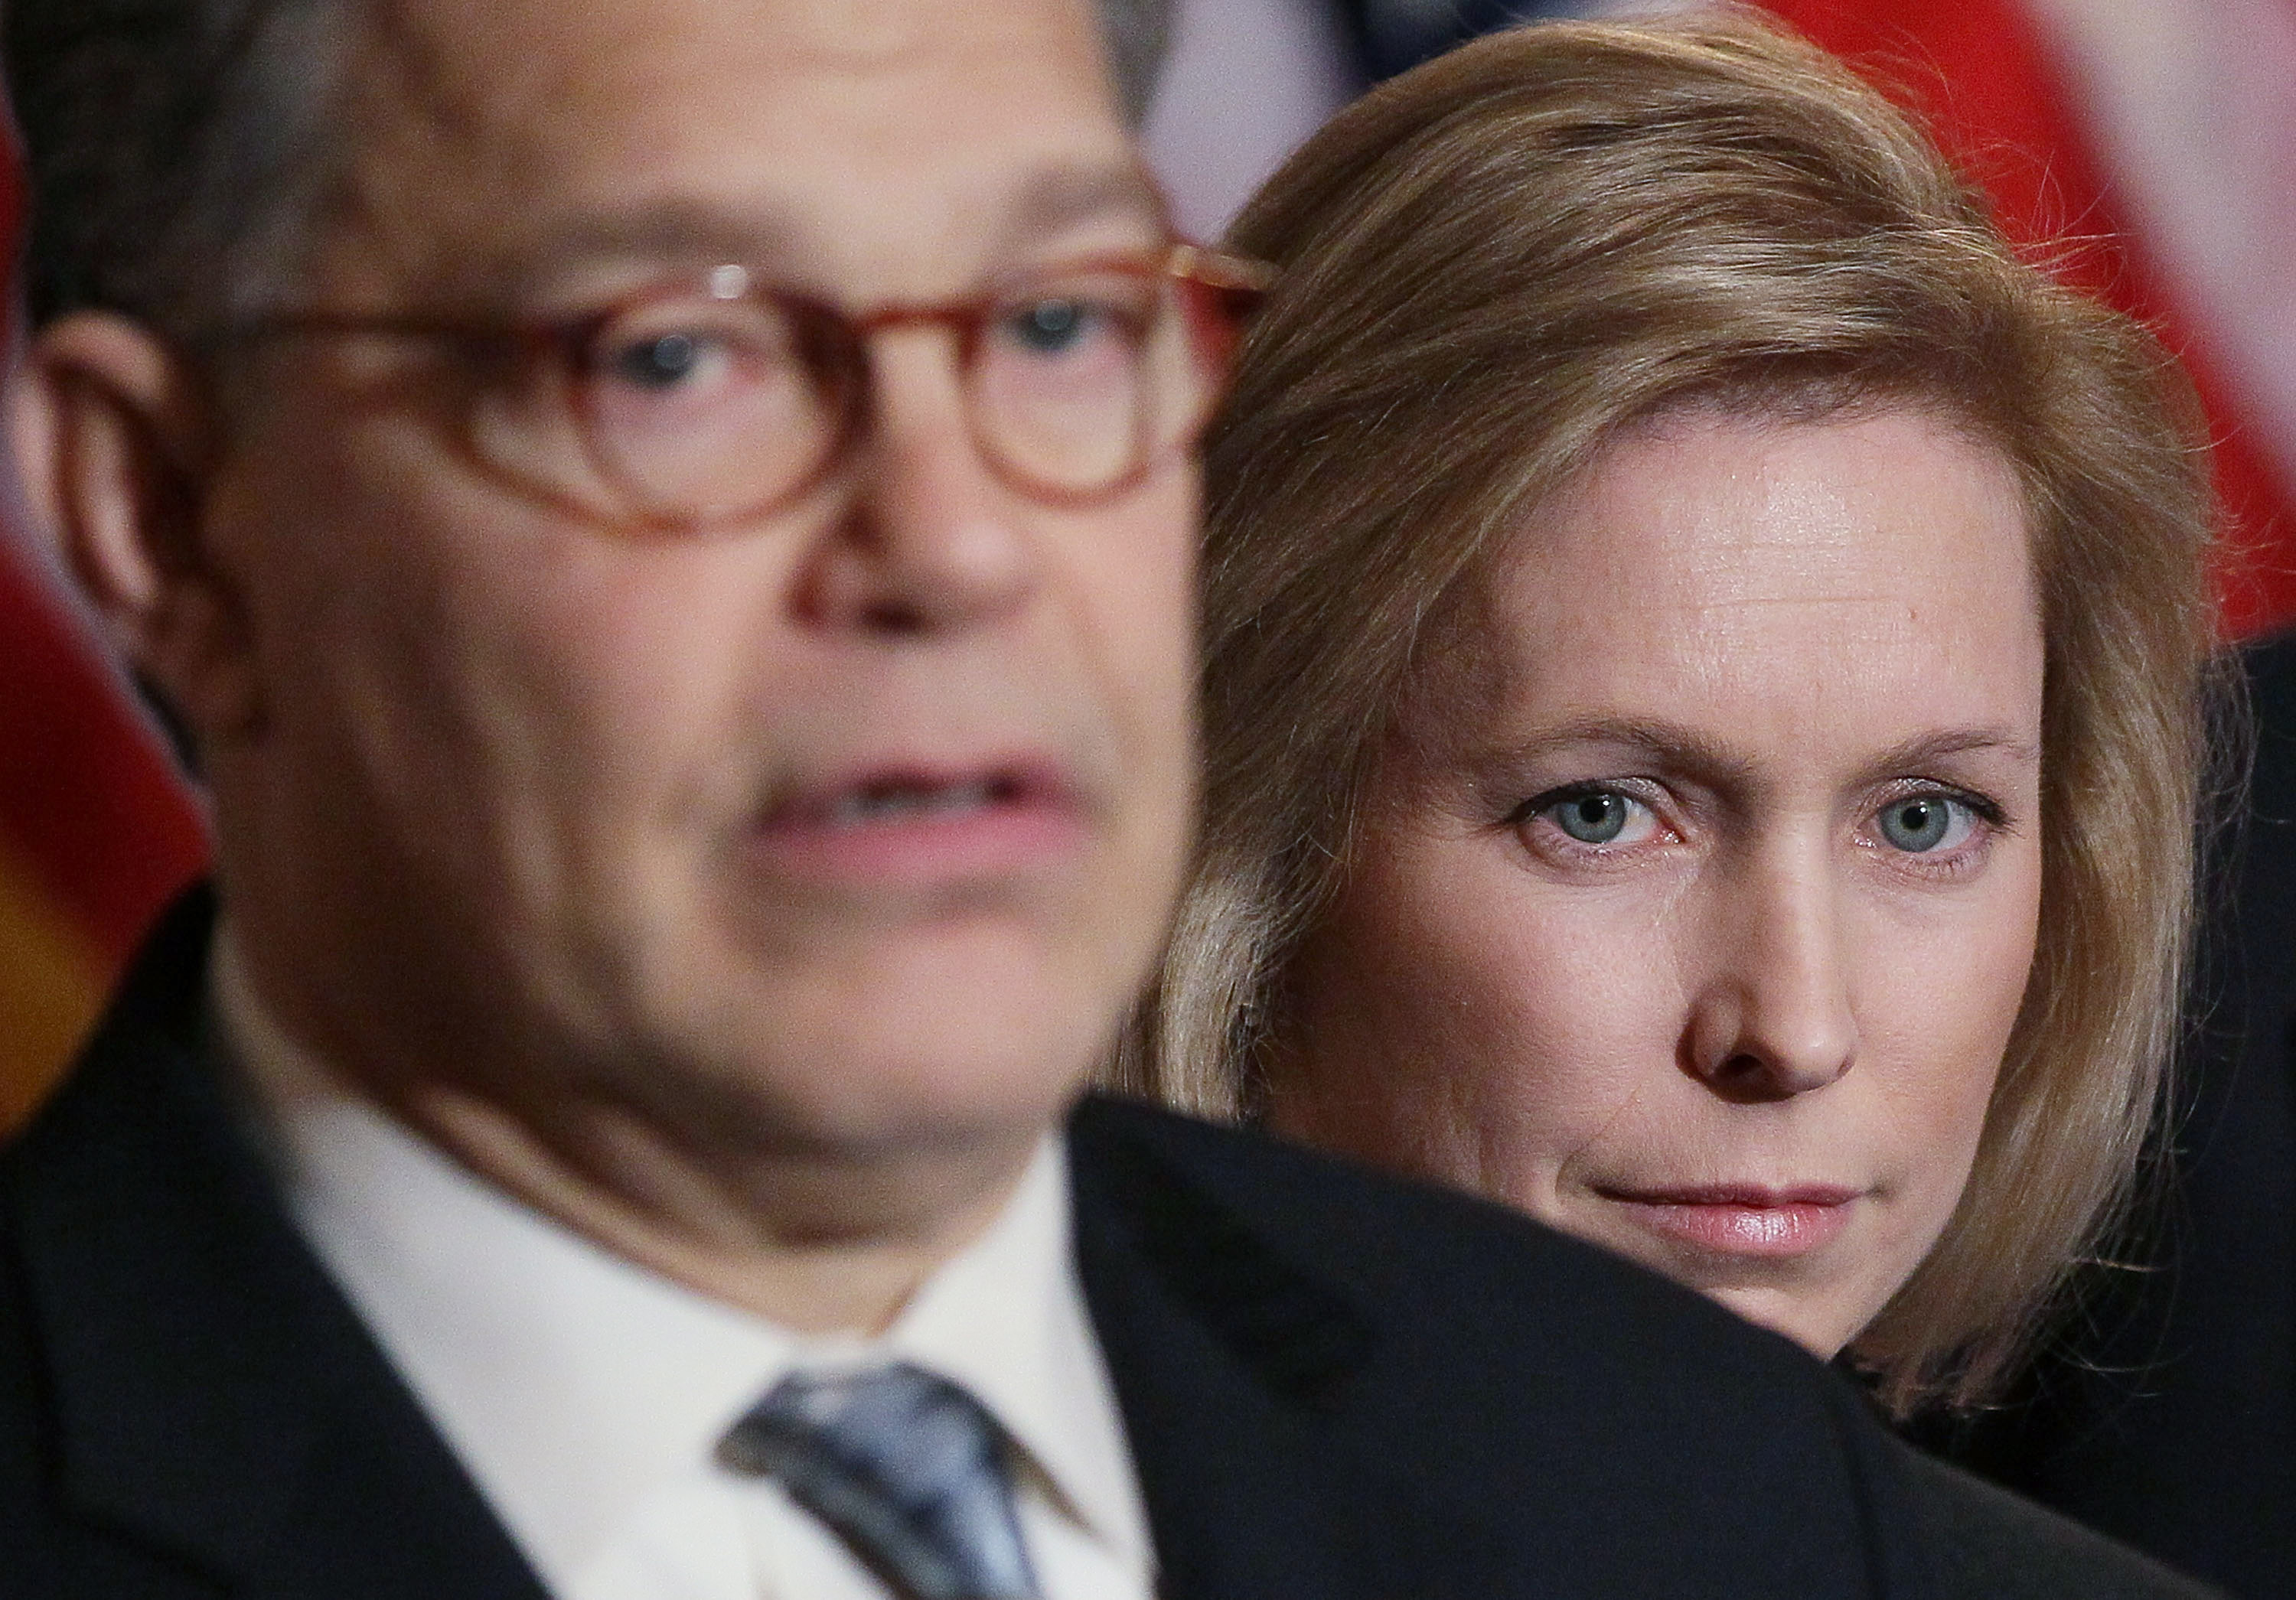 Sen. Kristen Gillibrand and Sen. Al Franken participatie in a news conference to discuss women's health issues on February 8, 2011 (Mark Wilson/Getty Images)